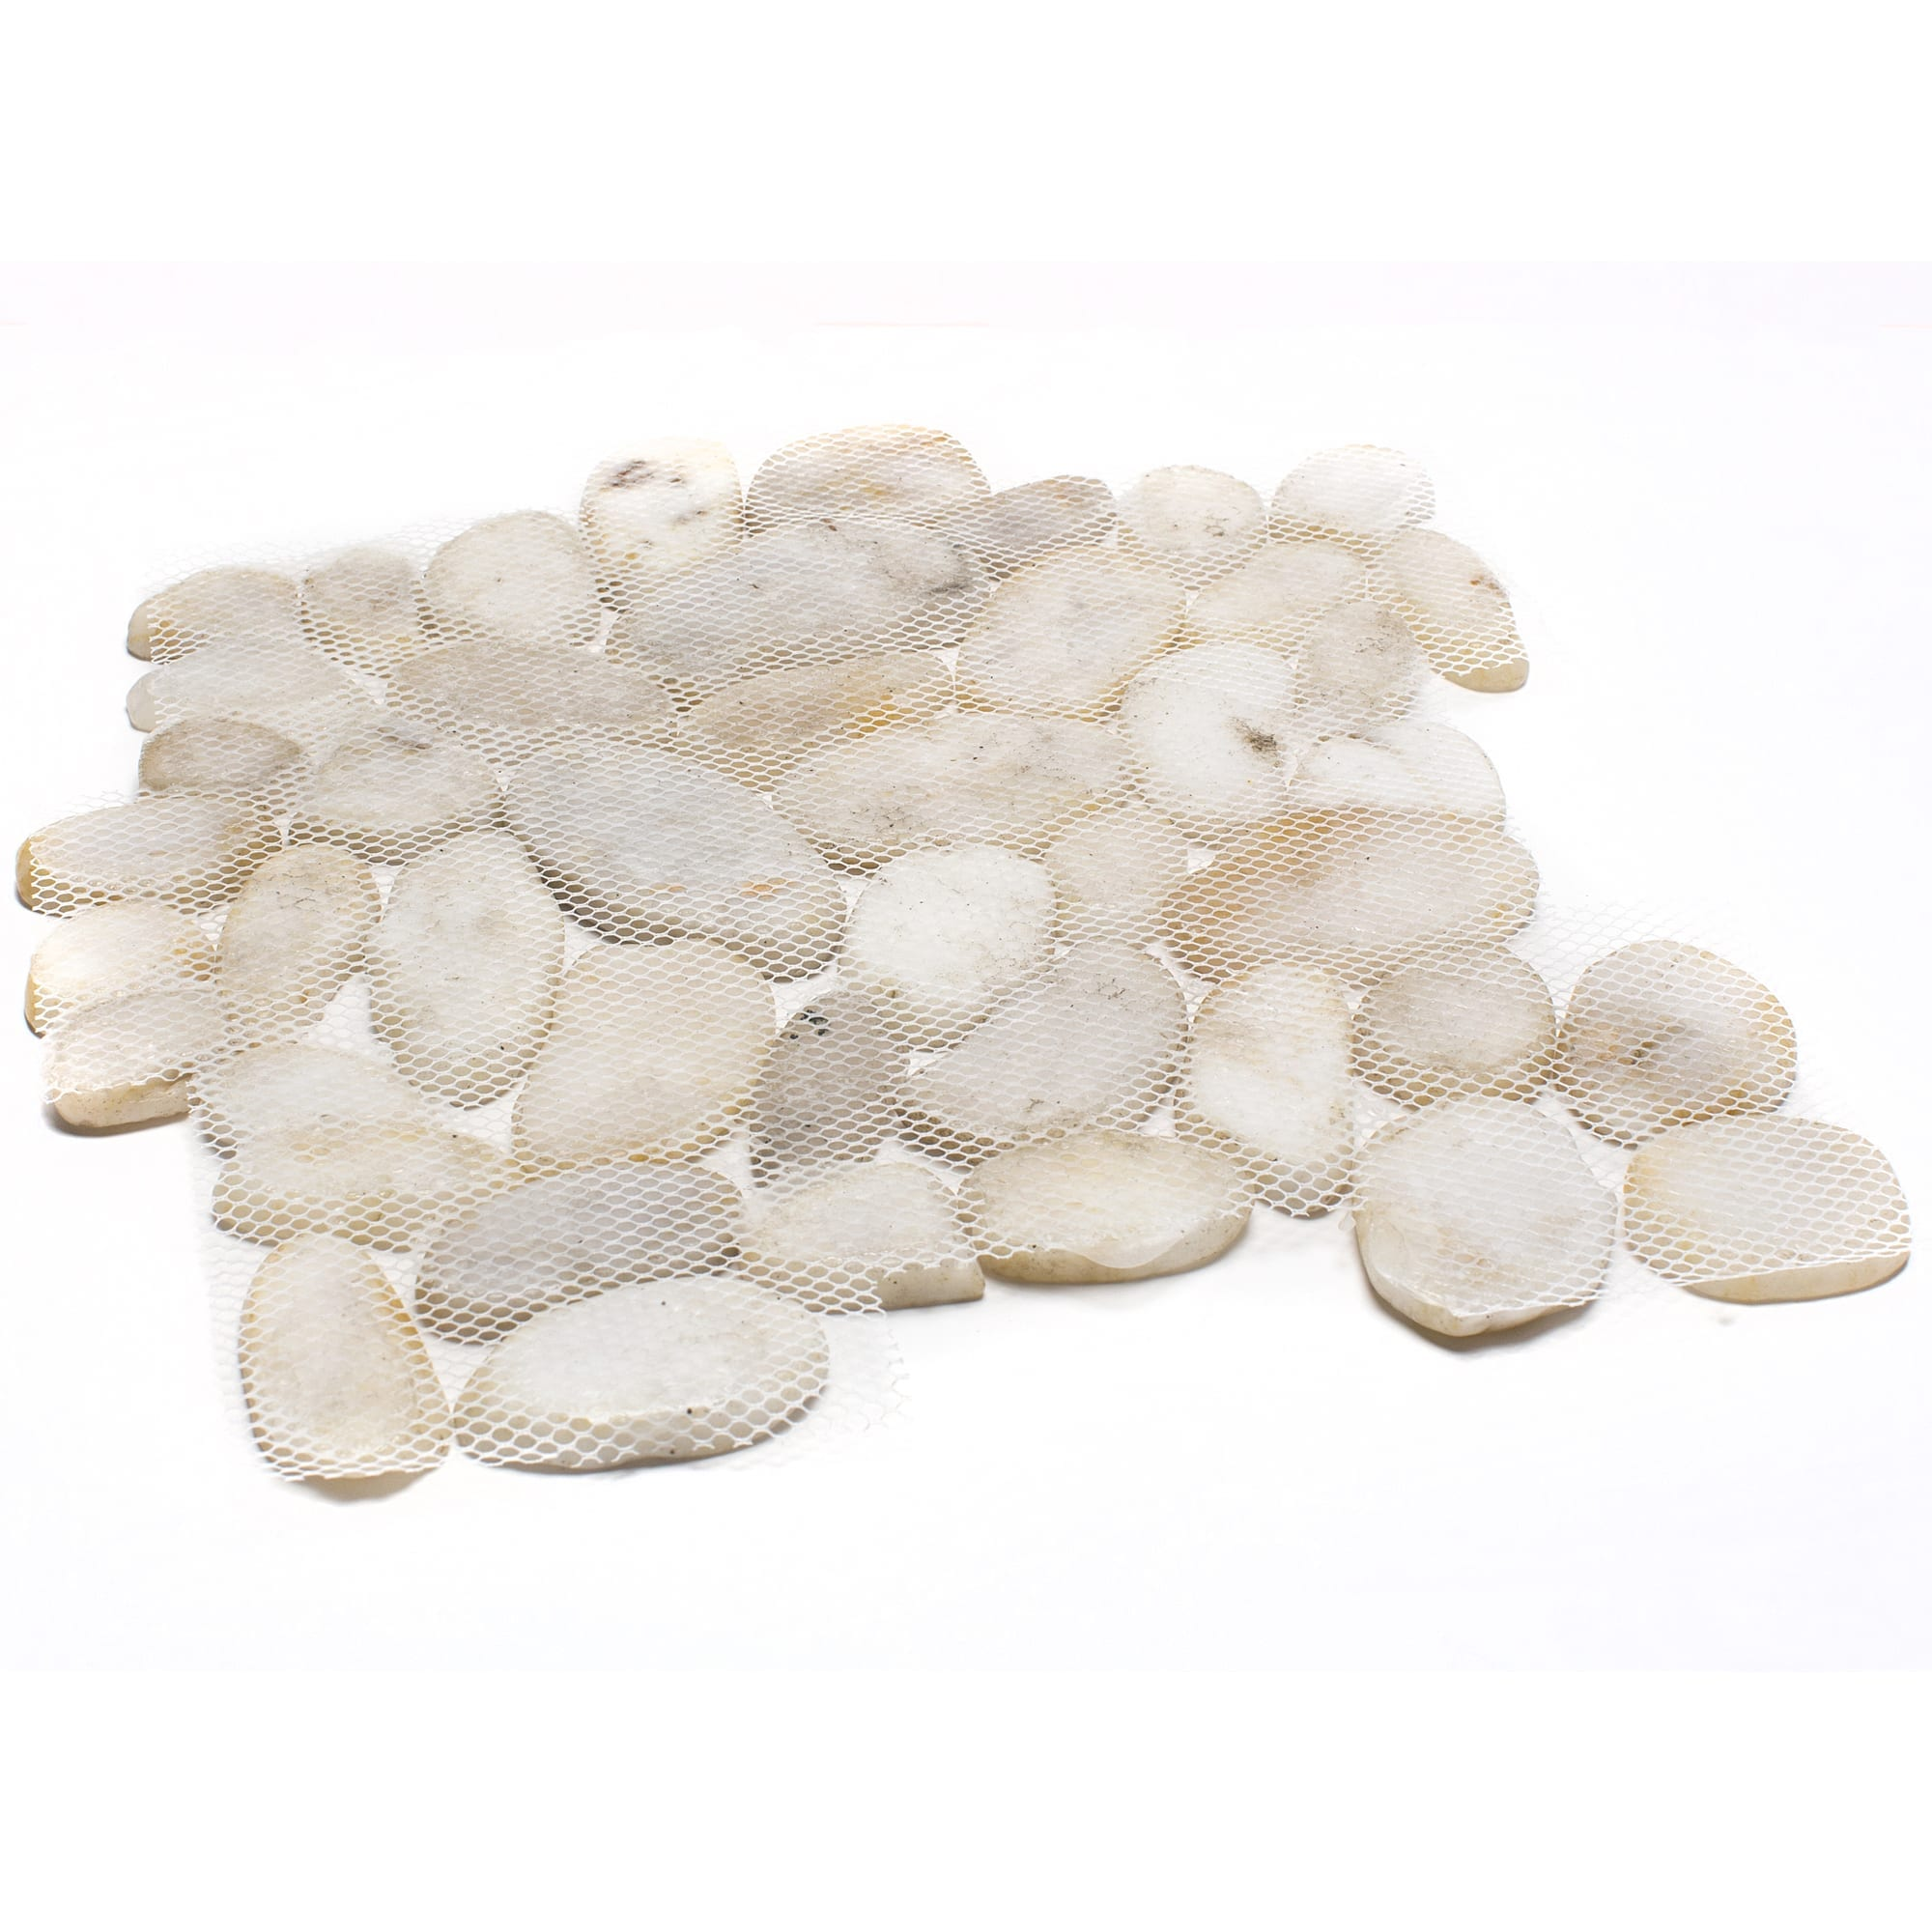 White Sliced Pebble Tile